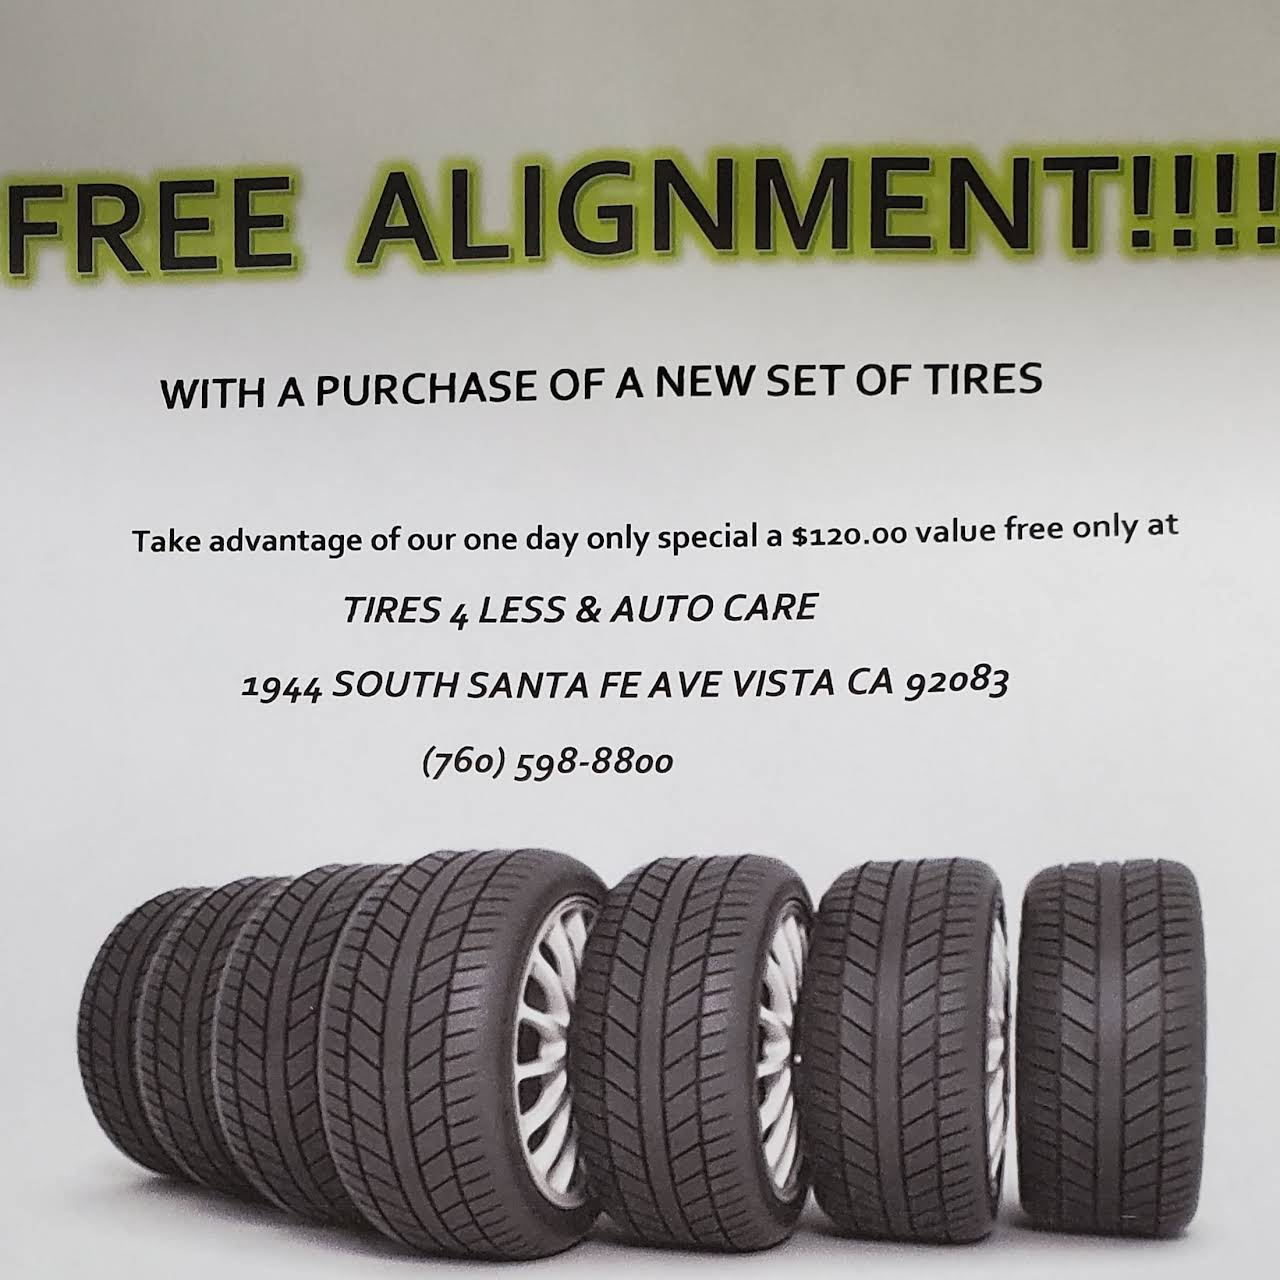 Tire For Less >> Tires 4 Less Auto Care Tire Shop In Vista